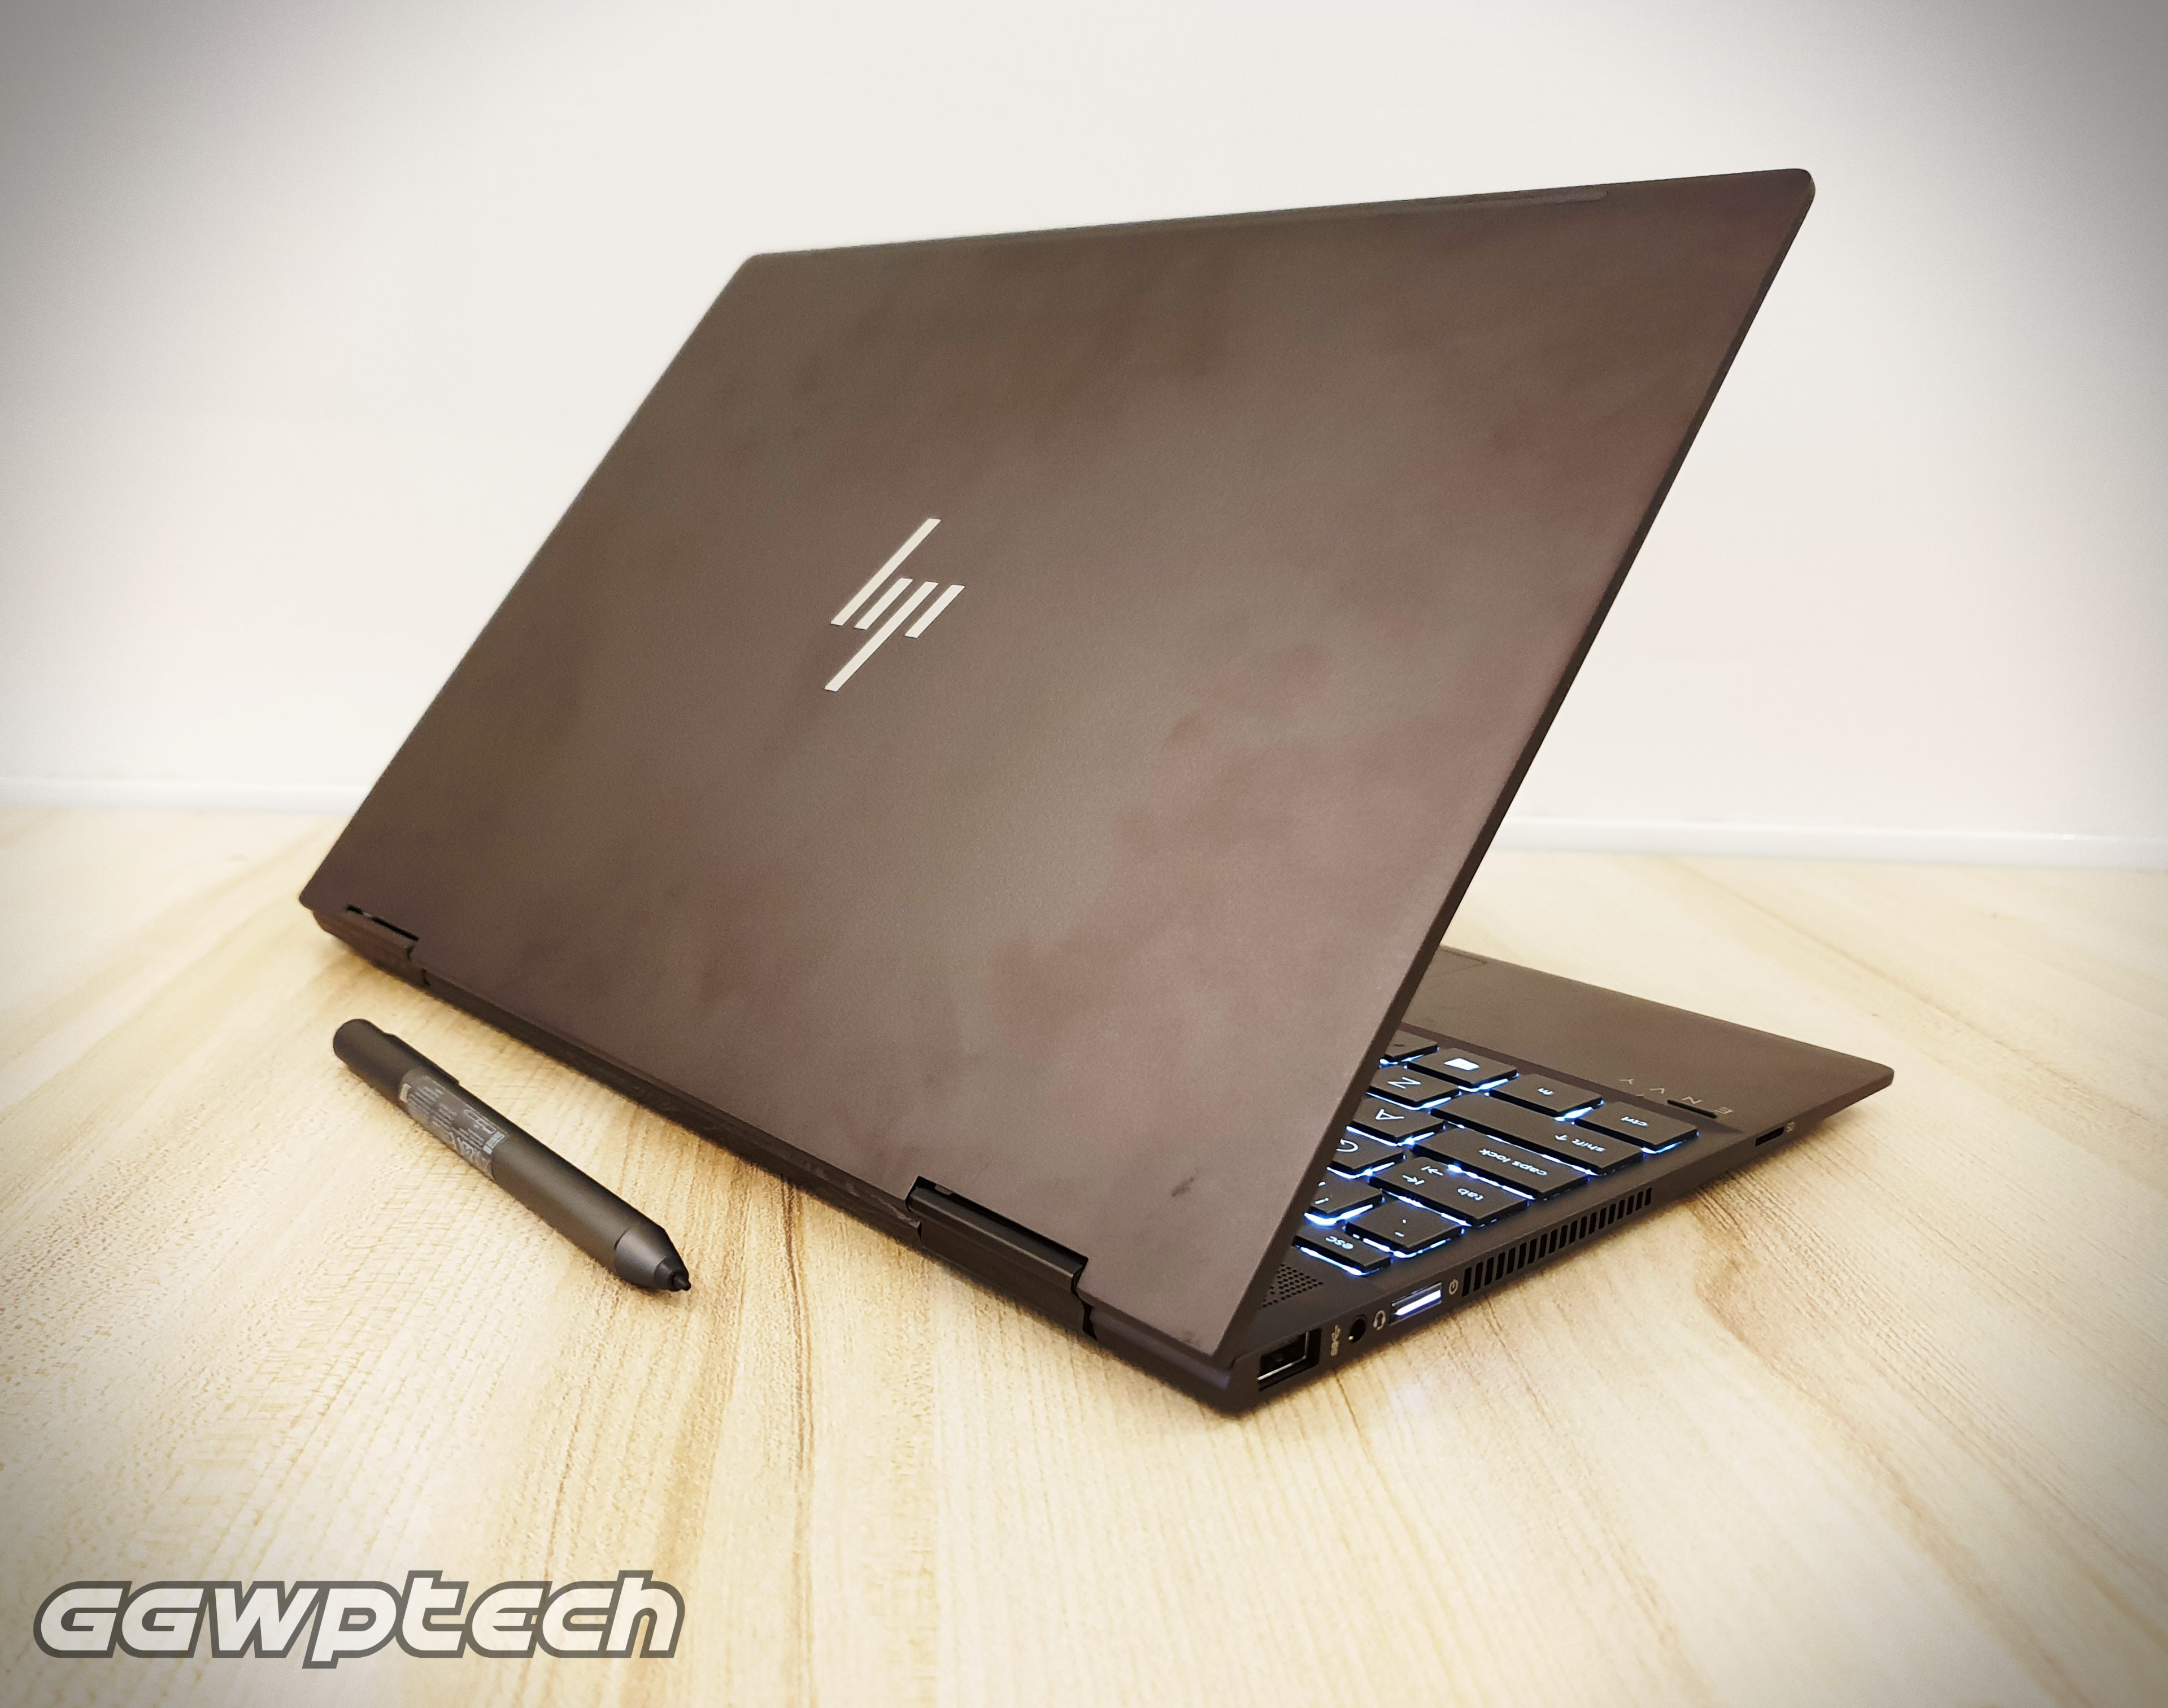 HP Envy x360 13 review | Our first look at the Ryzen powered laptops